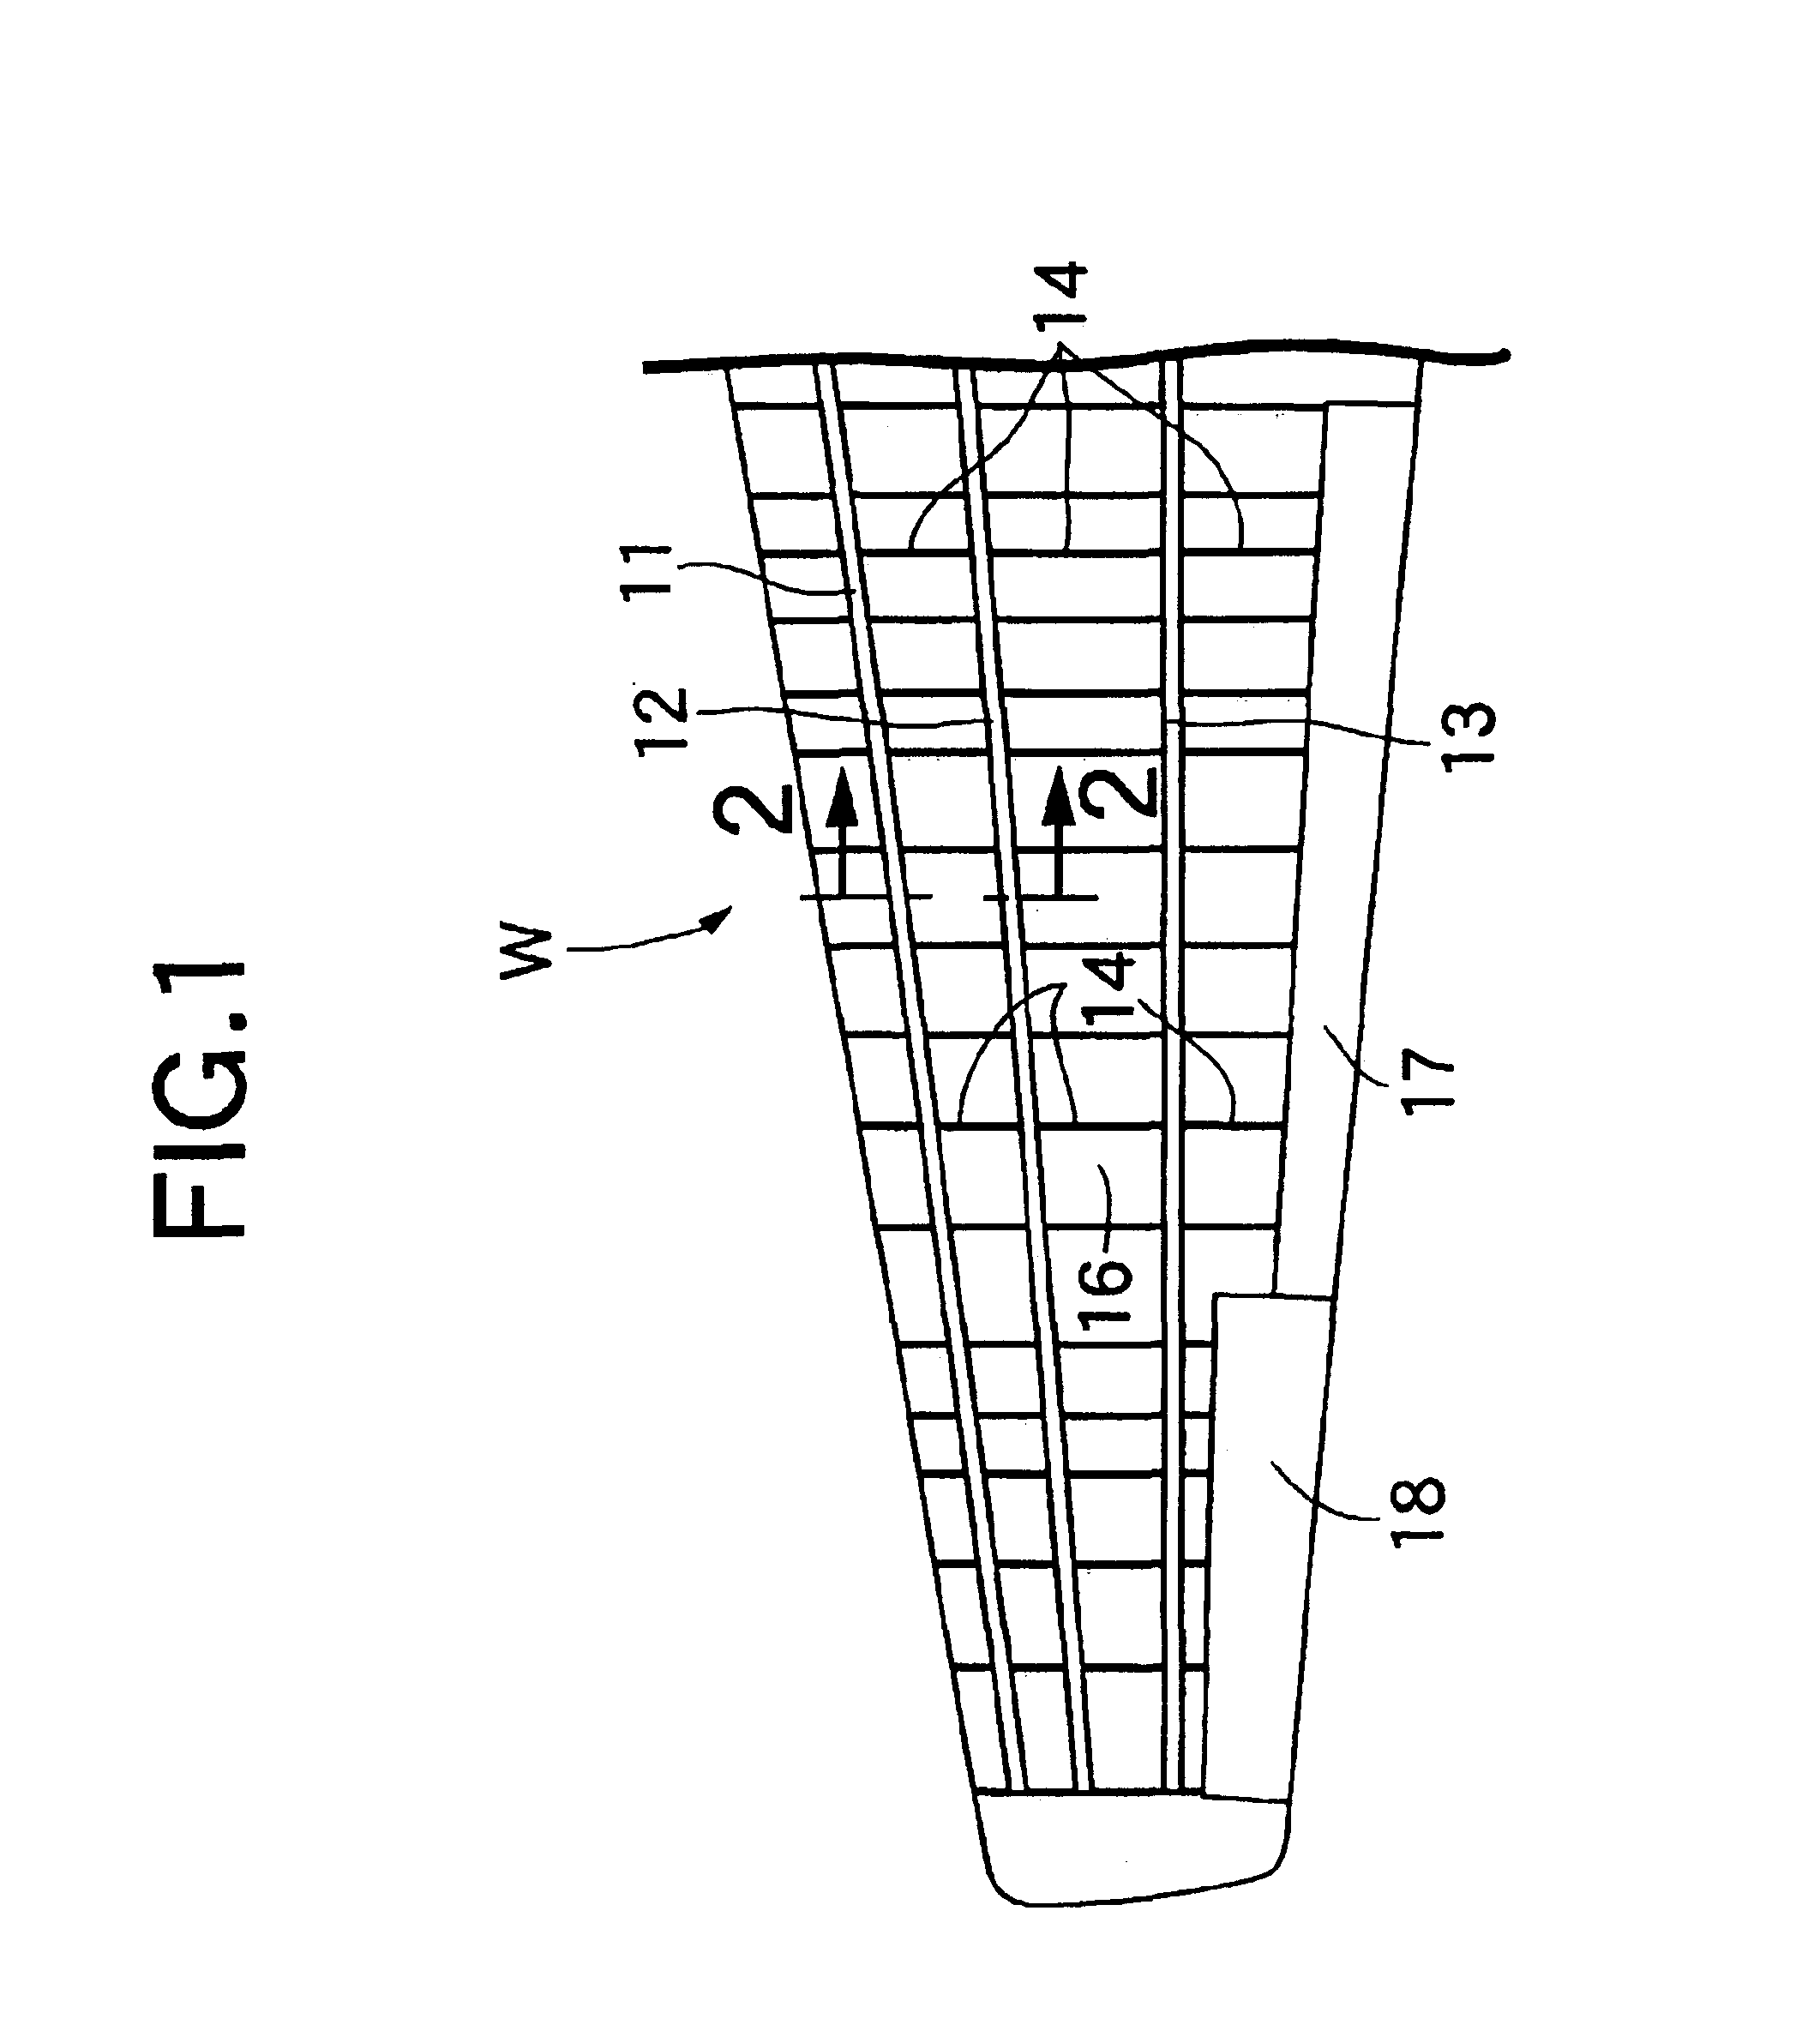 patent us6786452 - wing structure of airplane